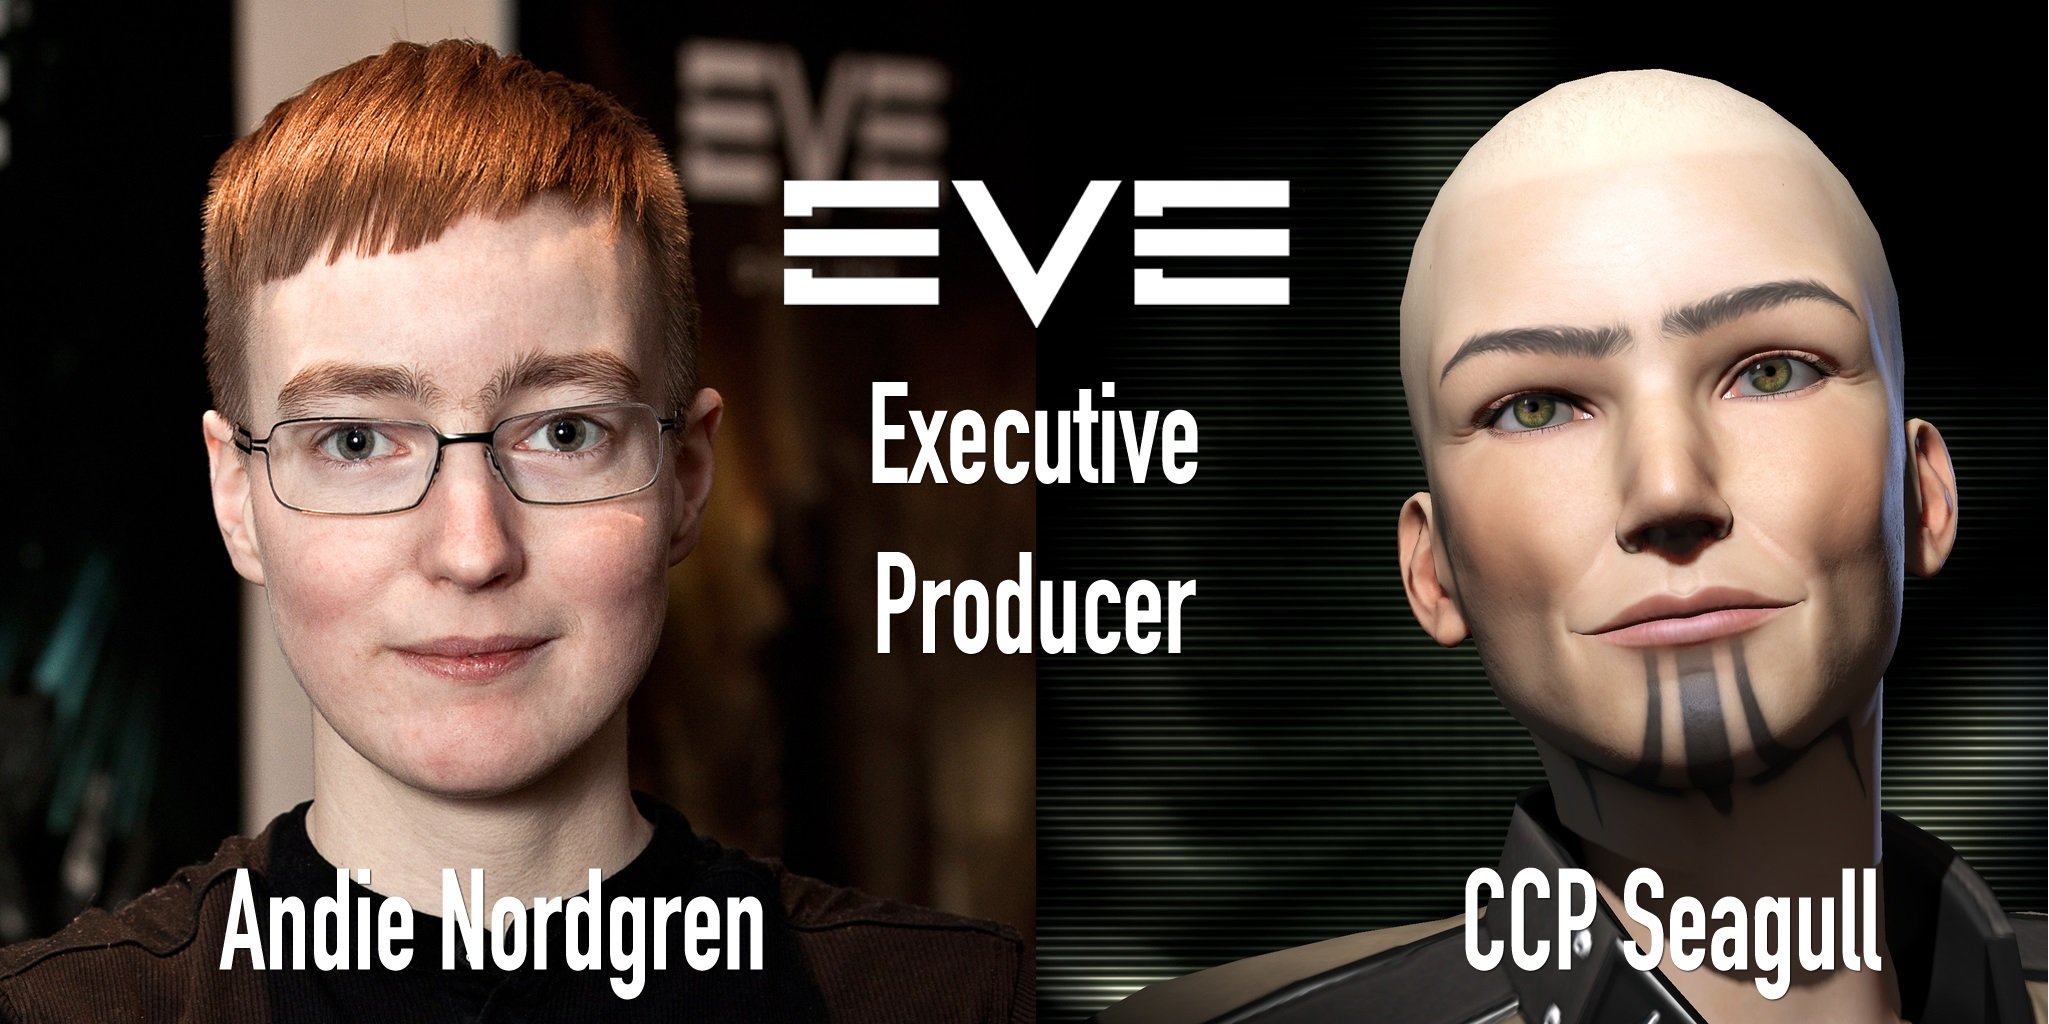 Andie Nordgren - Executive Producer of EVE Online